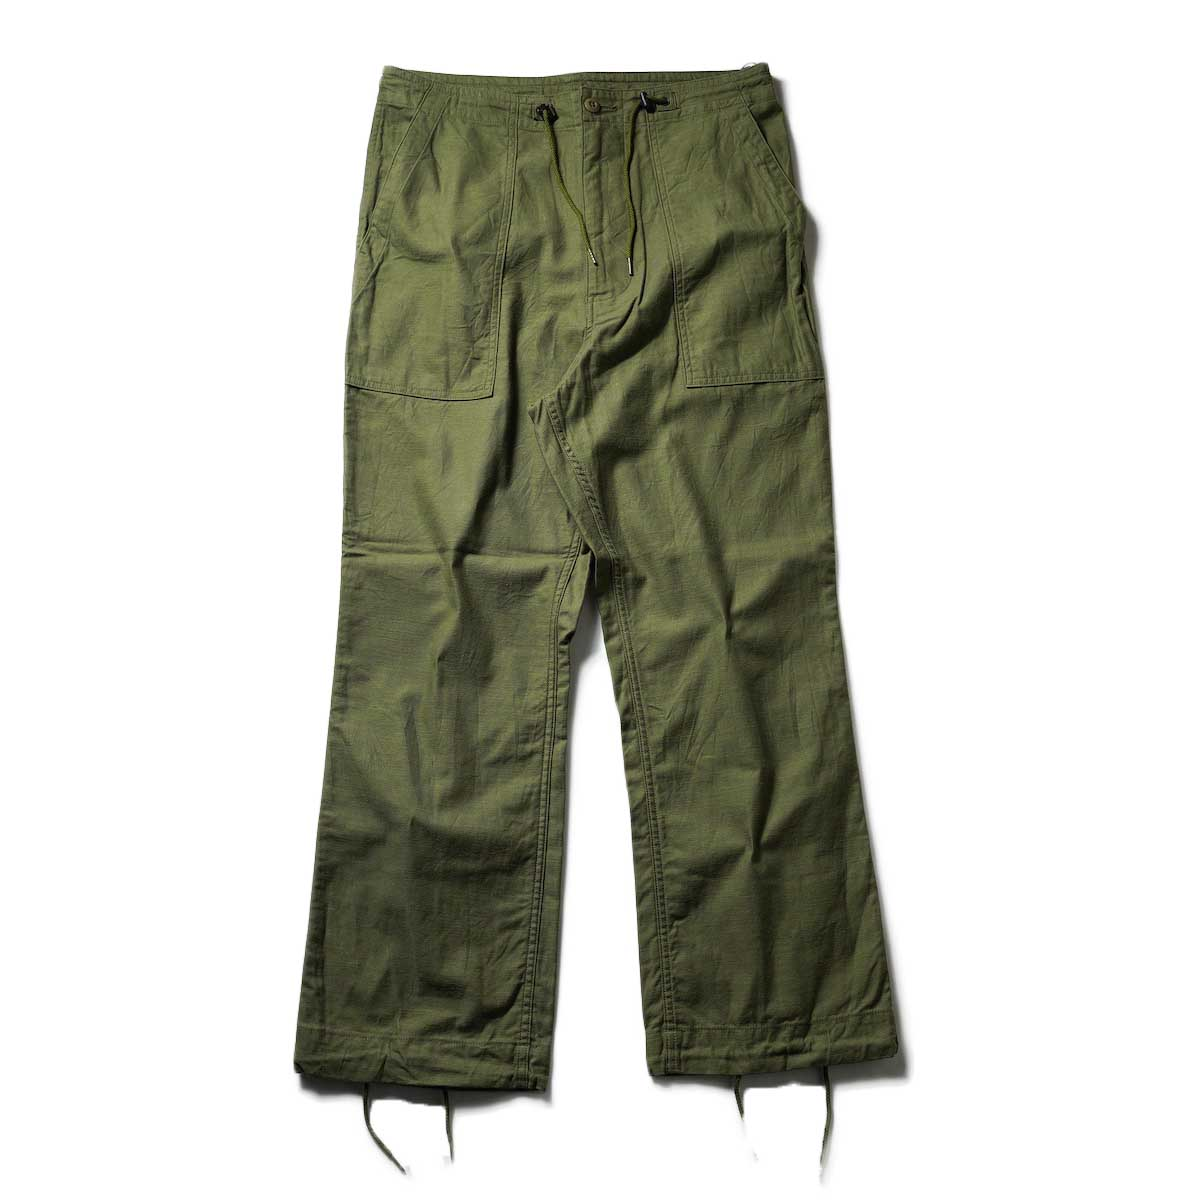 Needles / STRING FATIGUE PANT - BACK SATEEN (Olive)